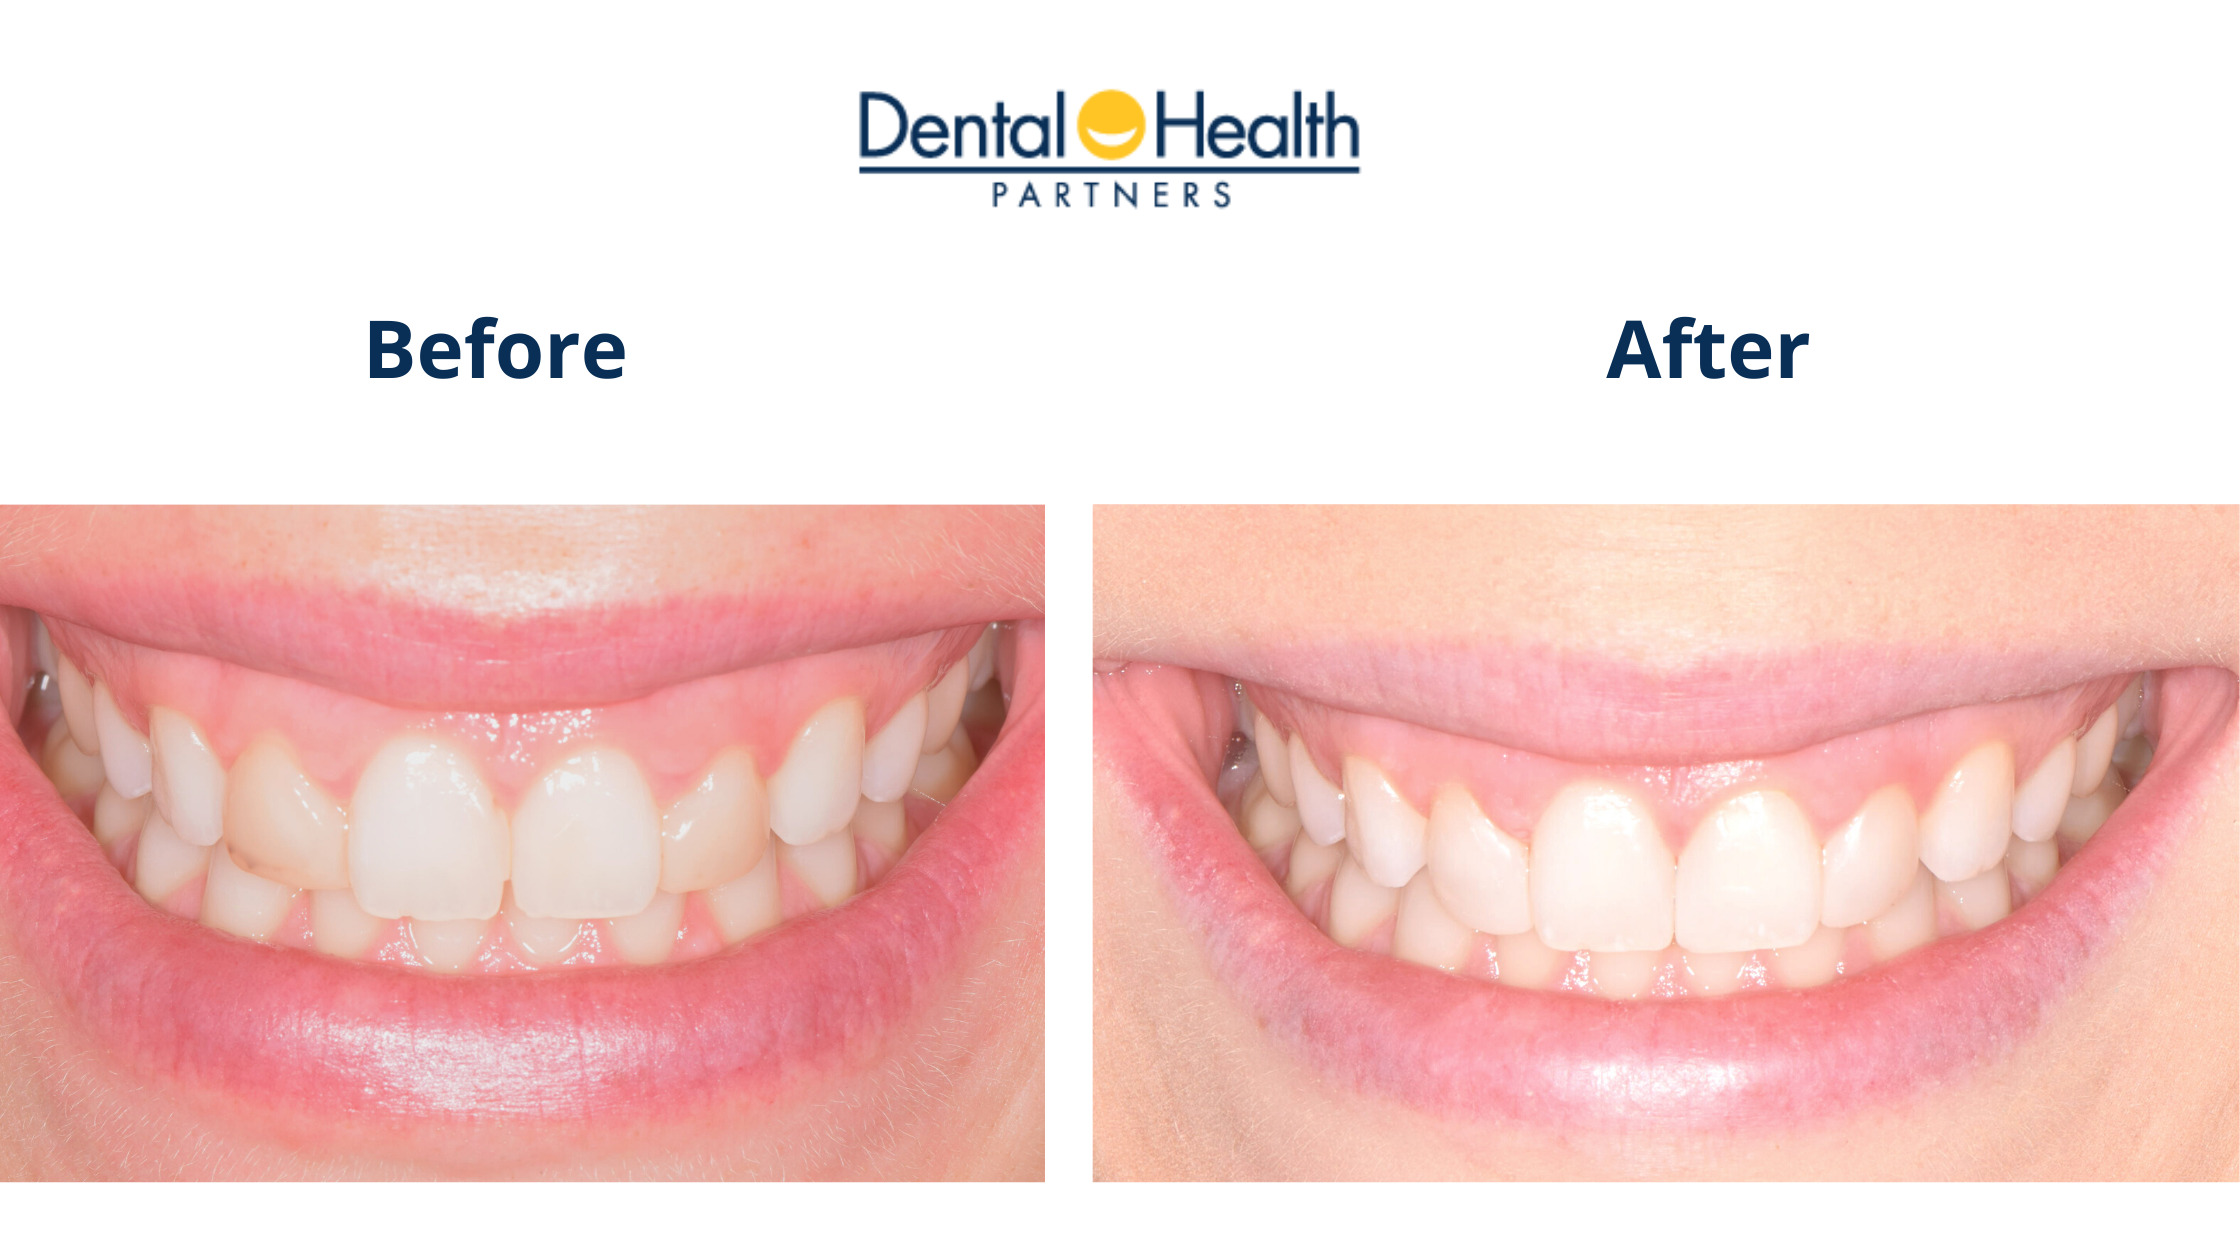 Before & After   Lateral Incisors Bonding Removal & Composite Re-Application